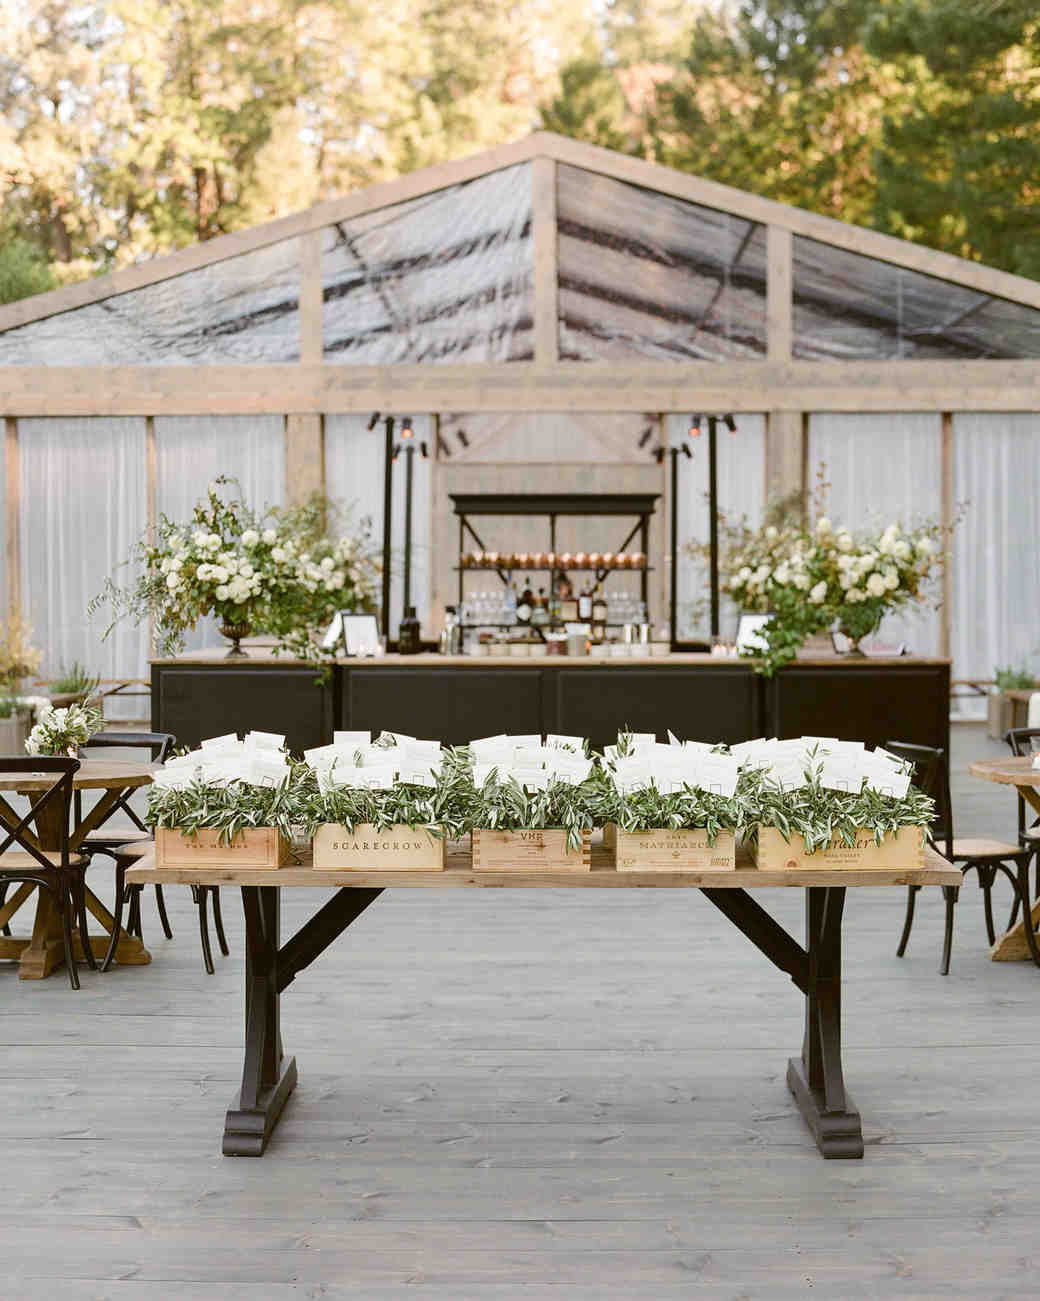 escort card table display outdoor bar tent area